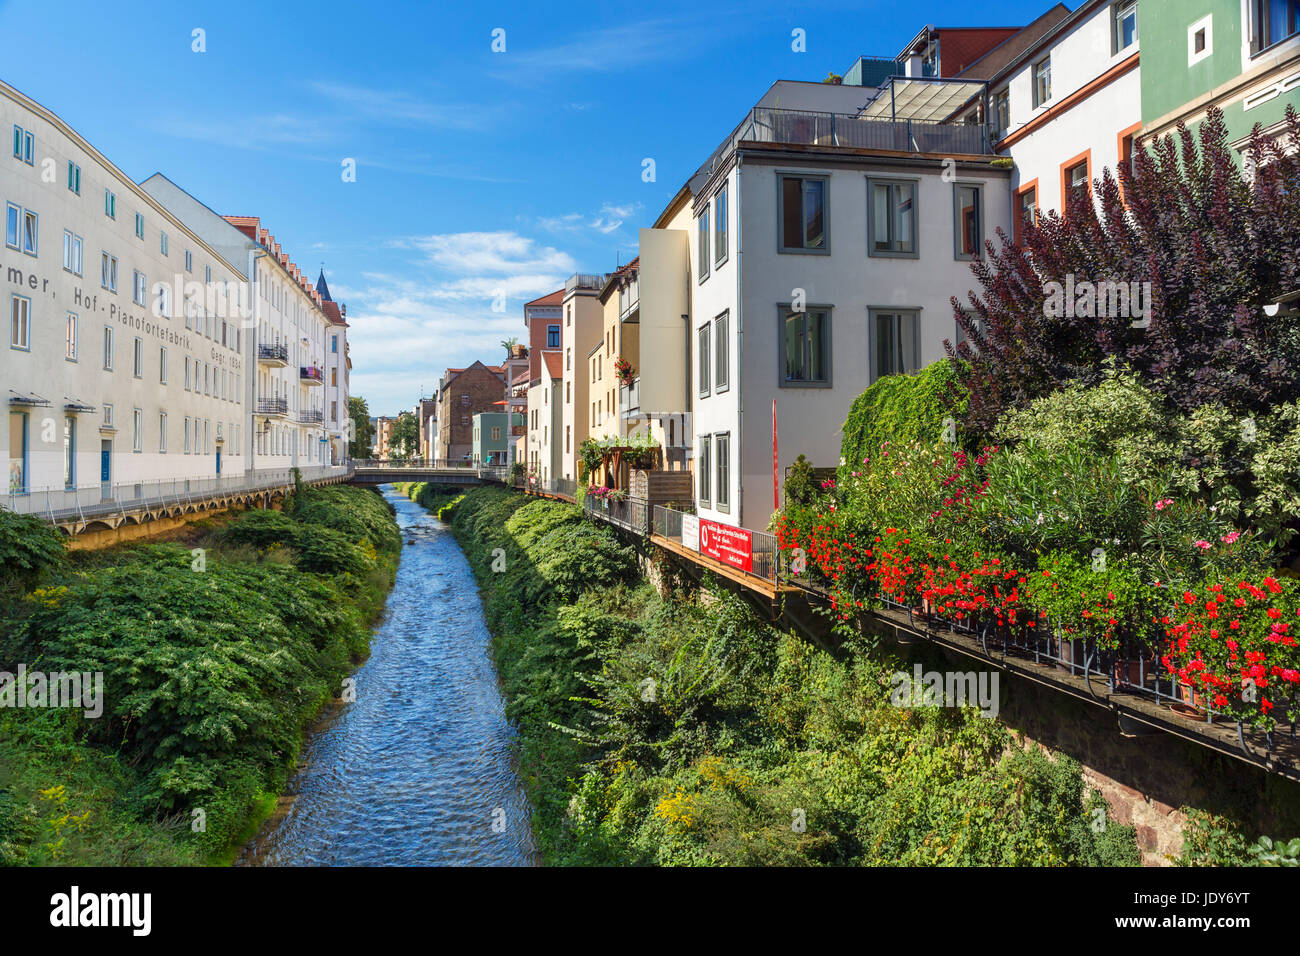 Stream in the town centre, Meissen, Saxony, Germany - Stock Image